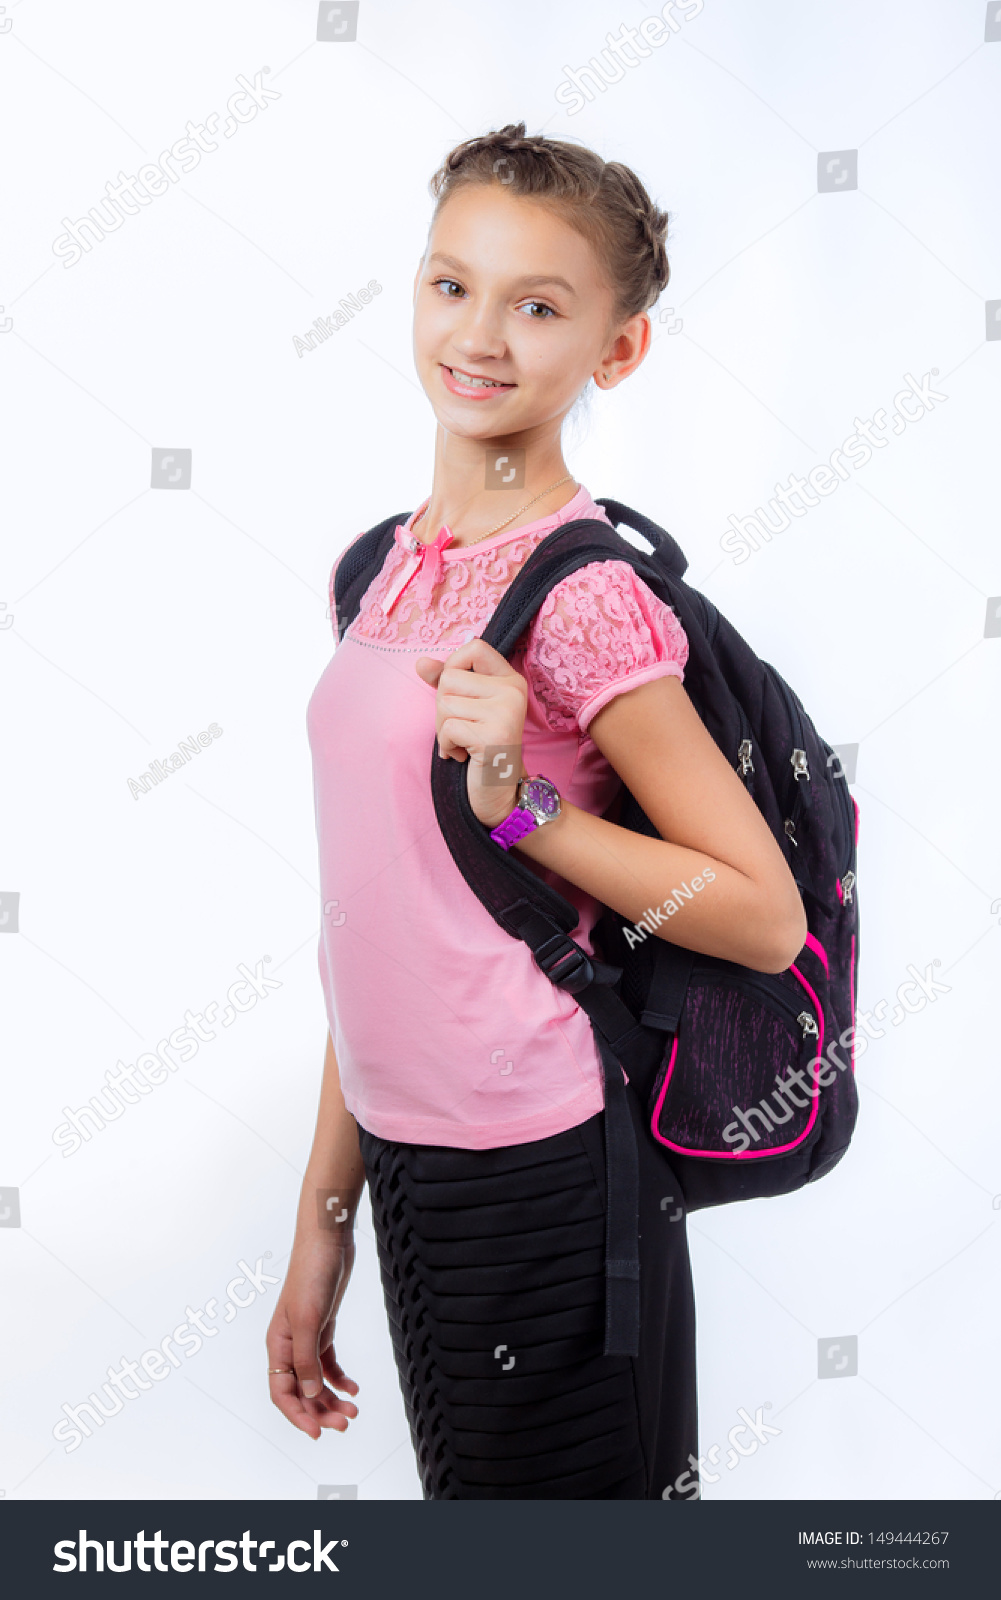 Young scool girl